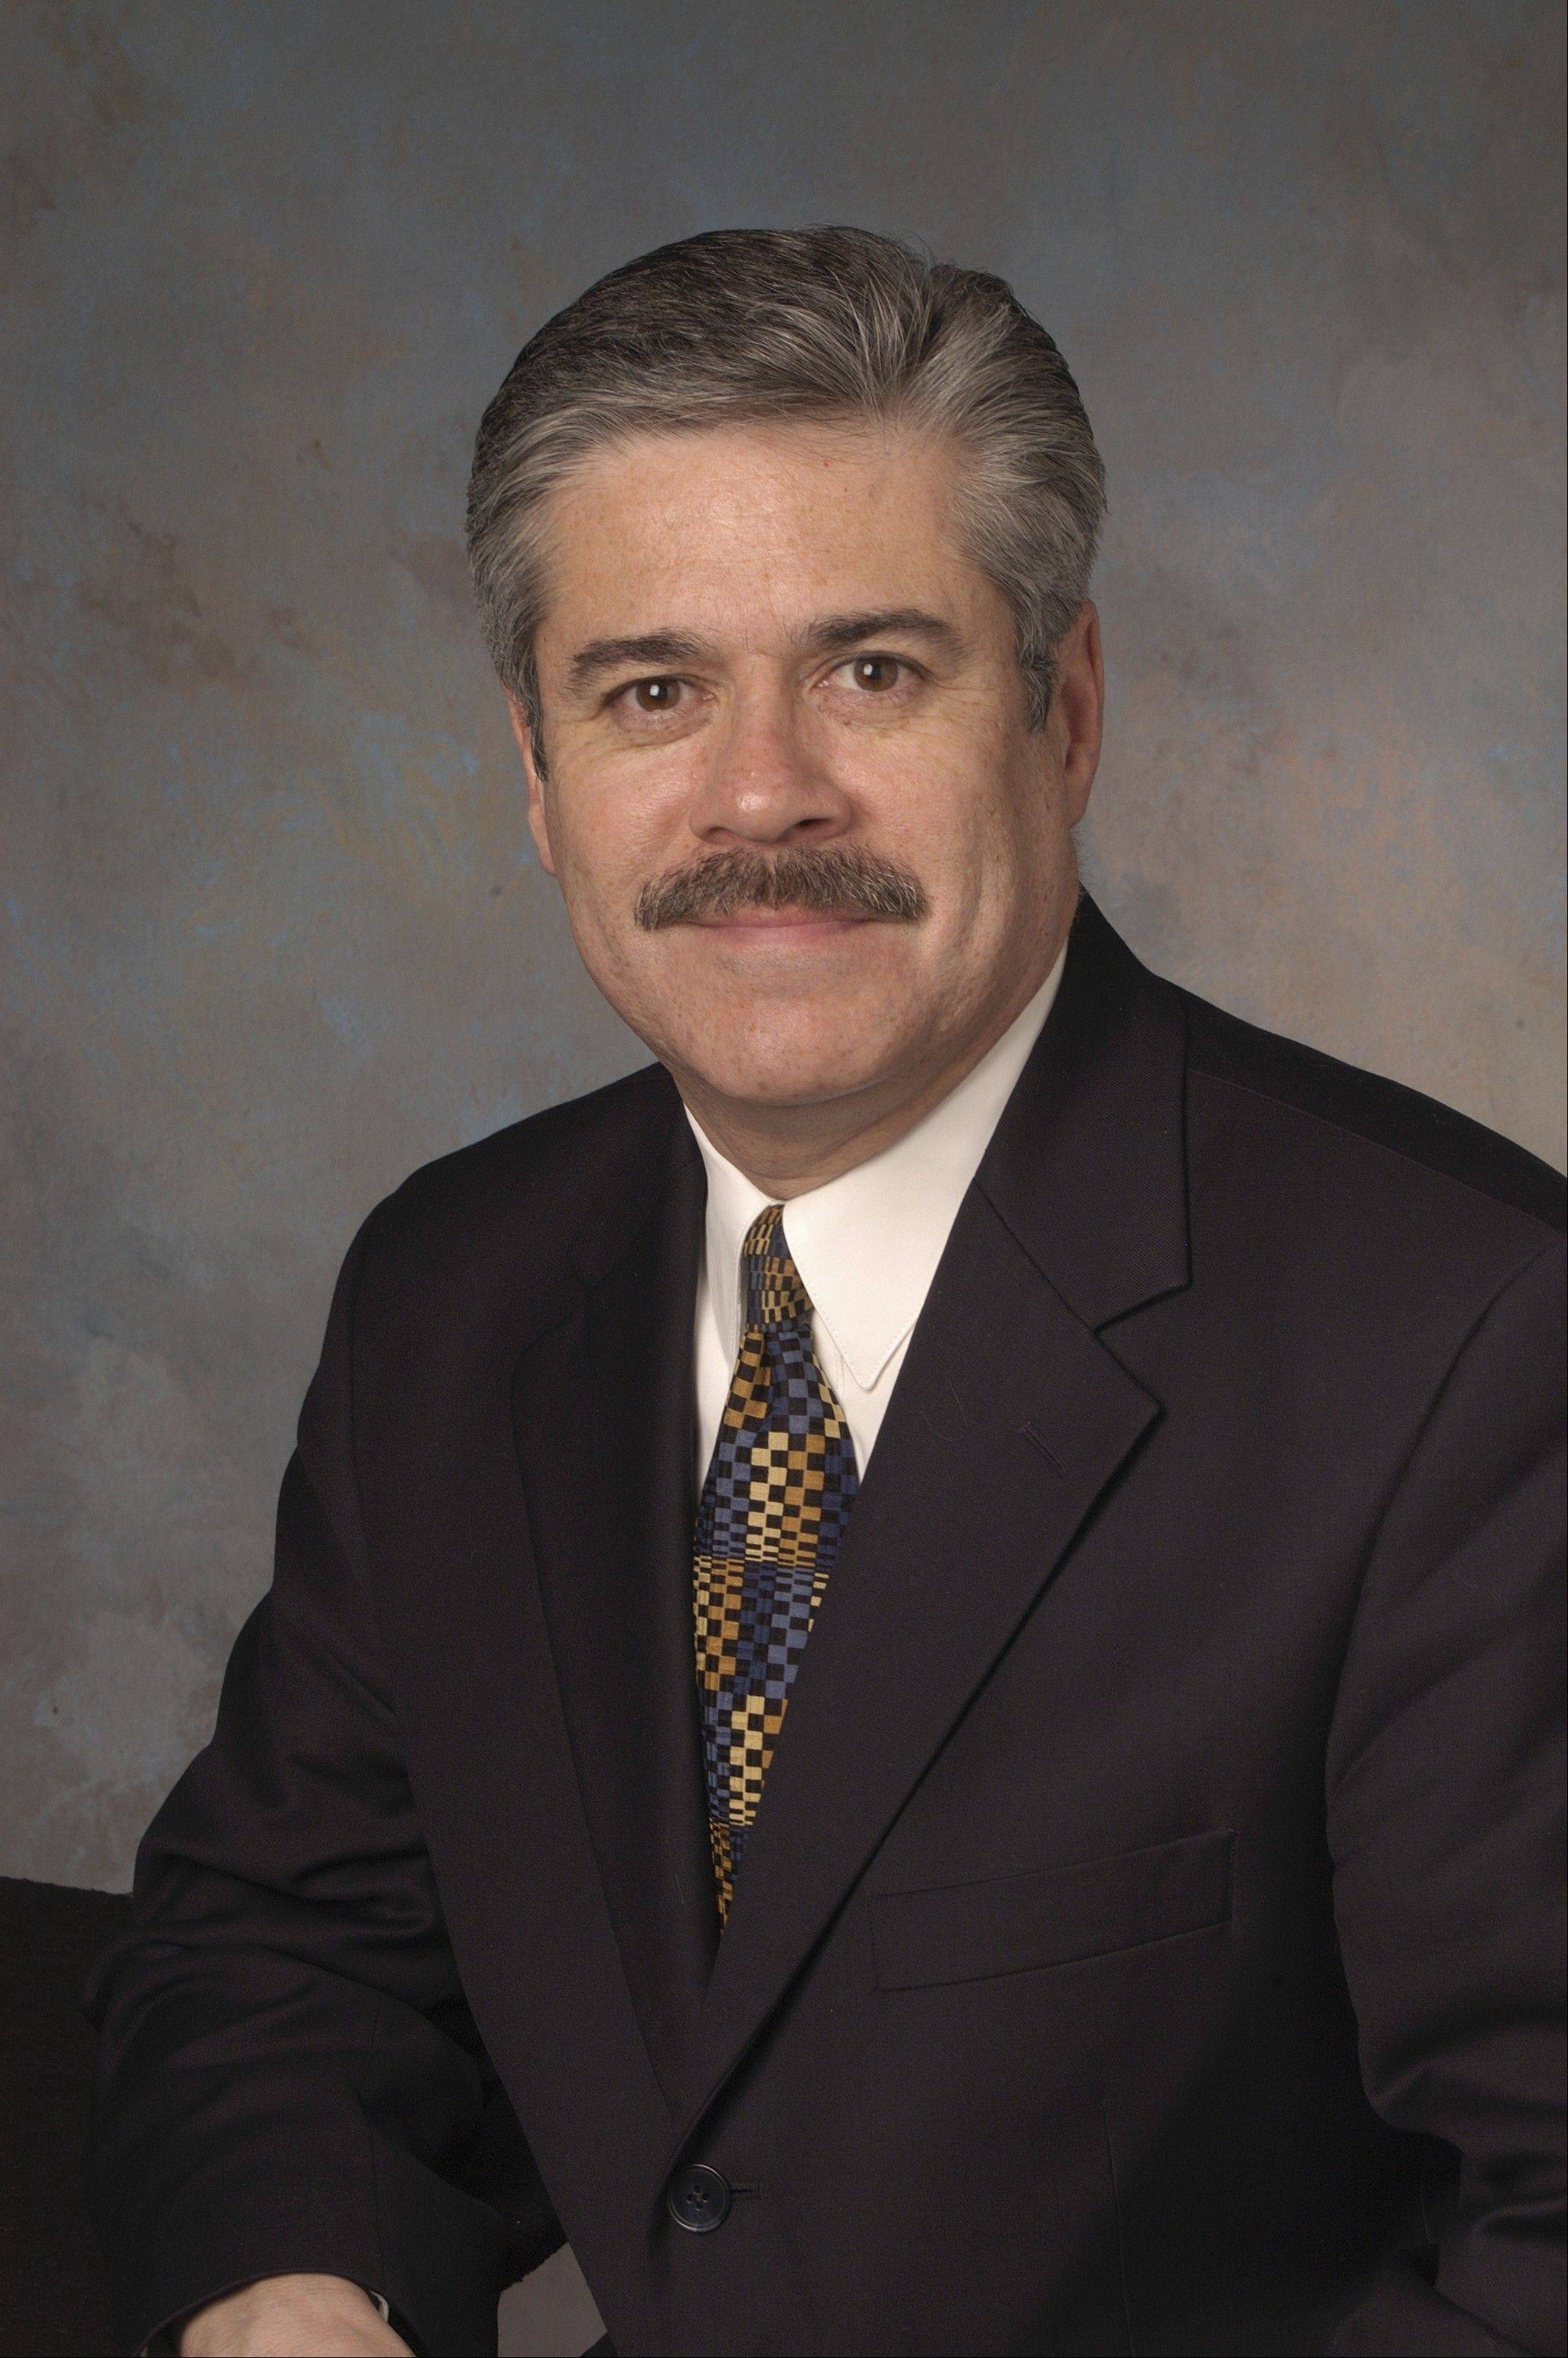 Democratic State Rep. Fred Crespo of Hoffman Estates